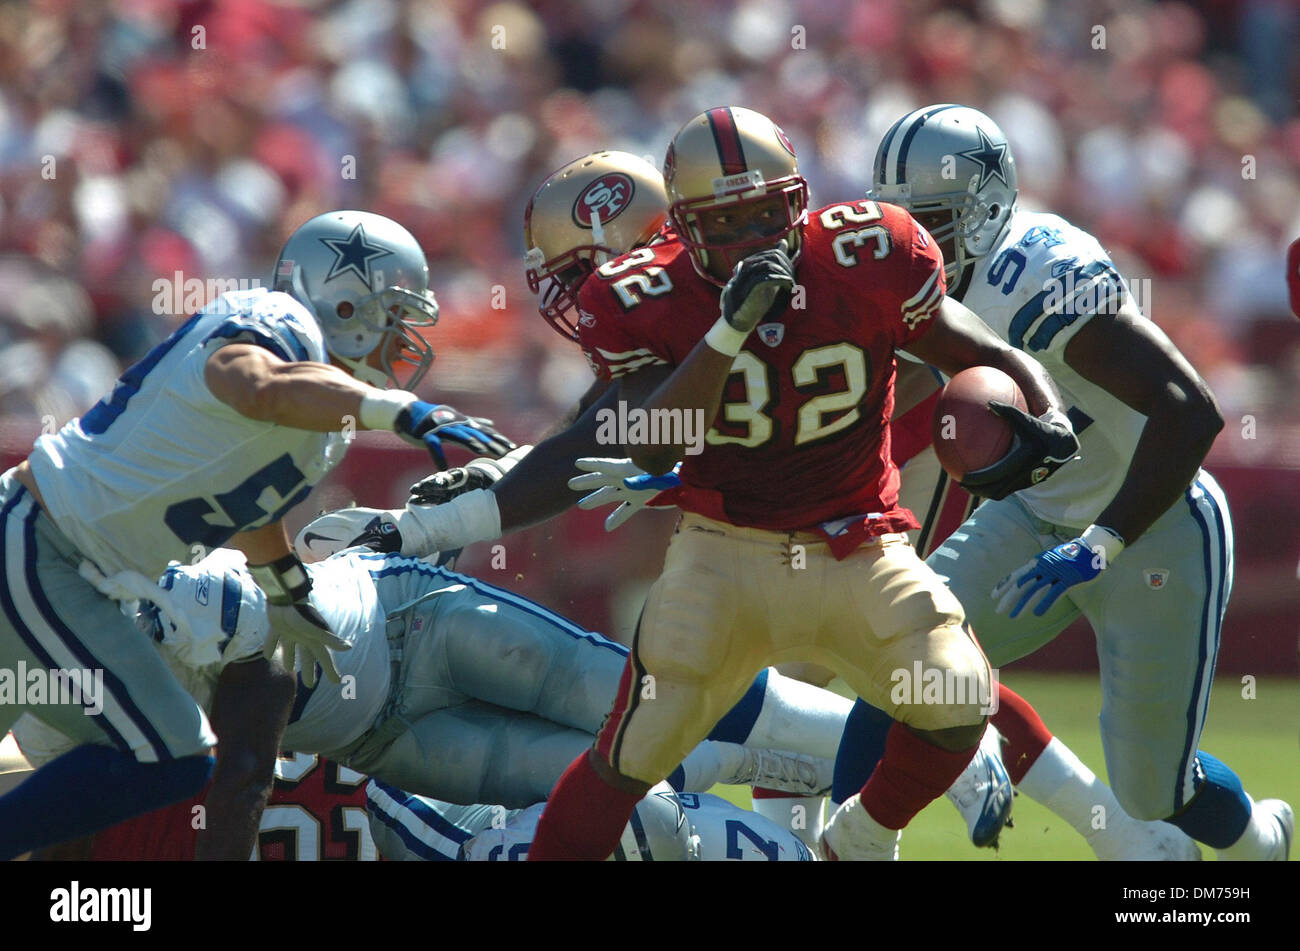 Sep 25, 2005; San Francisco, CA, USA; NFL FOOTBALL: 49er Kevan Barlow jukes for twelve yard gain in the 1st quarter in Sunday afternoons game between the San Francisco 49ers/ Dallas Cowboys at Monster Park. Mandatory Credit: Photo by Jose Luis Villegas/Sacramento Bee/ZUMA Press. (©) Copyright 2005 by Jose Luis Villegas/Sacramento Bee - Stock Image